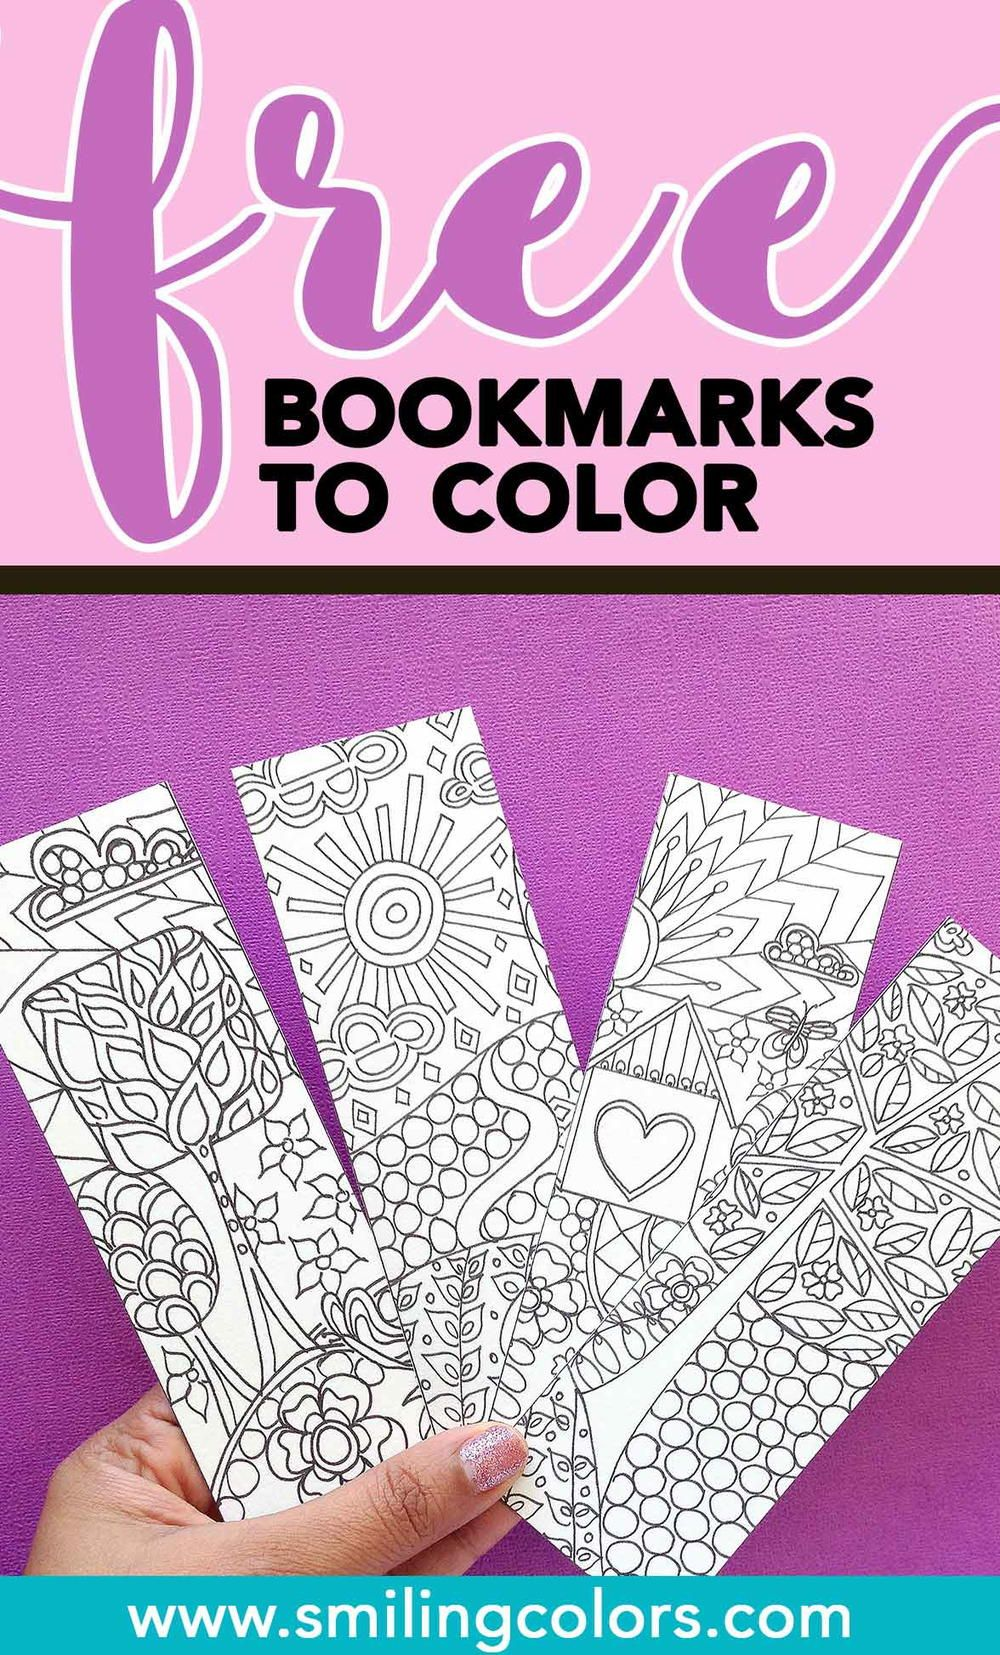 Bookmarks to Color | DIY Now | Pinterest | Bookmarks, Free printable ...